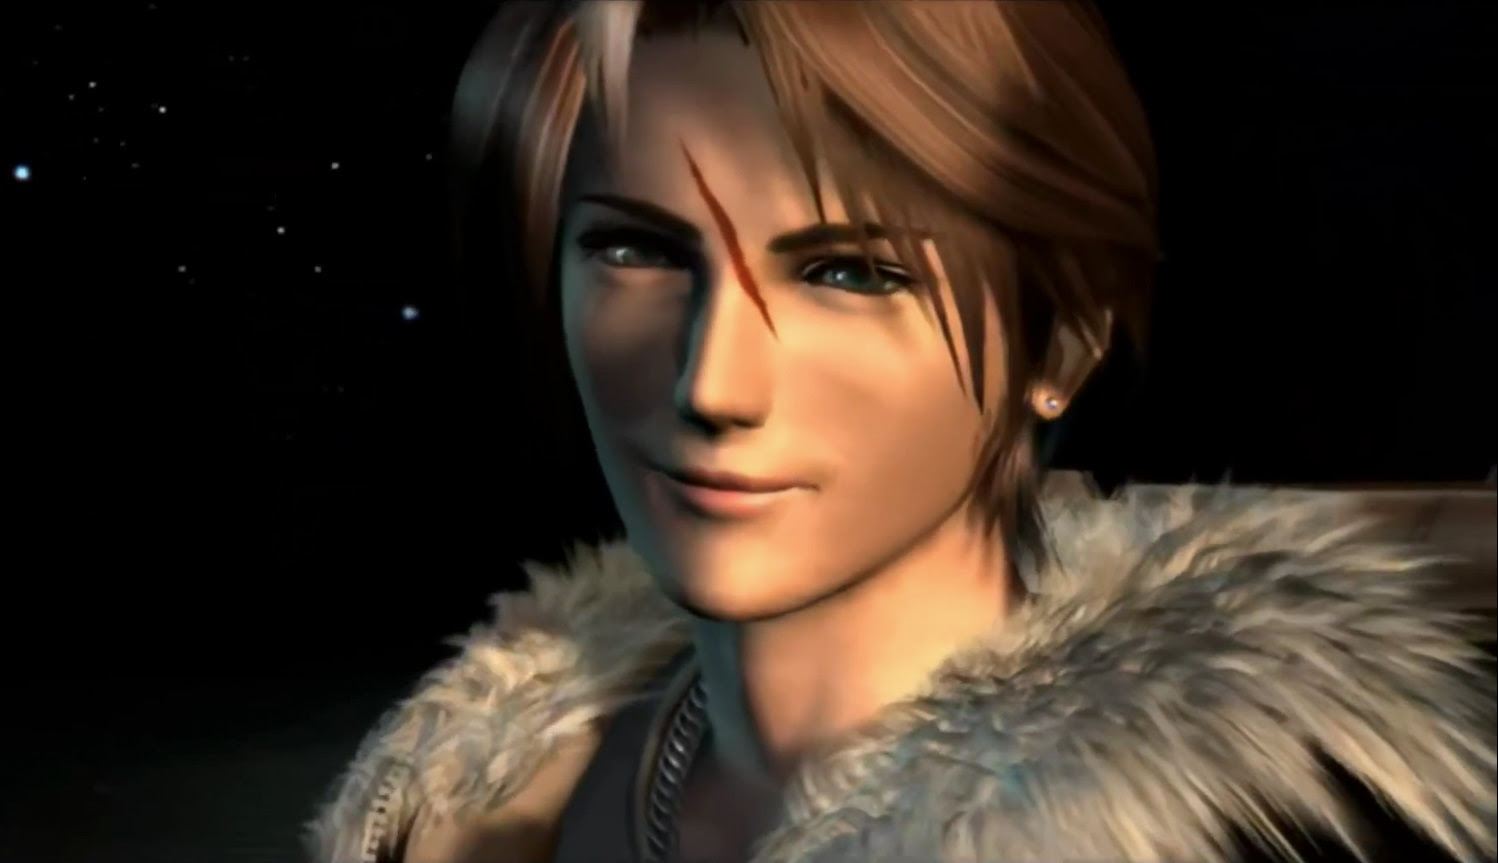 Man pays $46 grand to look like Final Fantasy VIII dreamboat Squall Leonhart screenshot